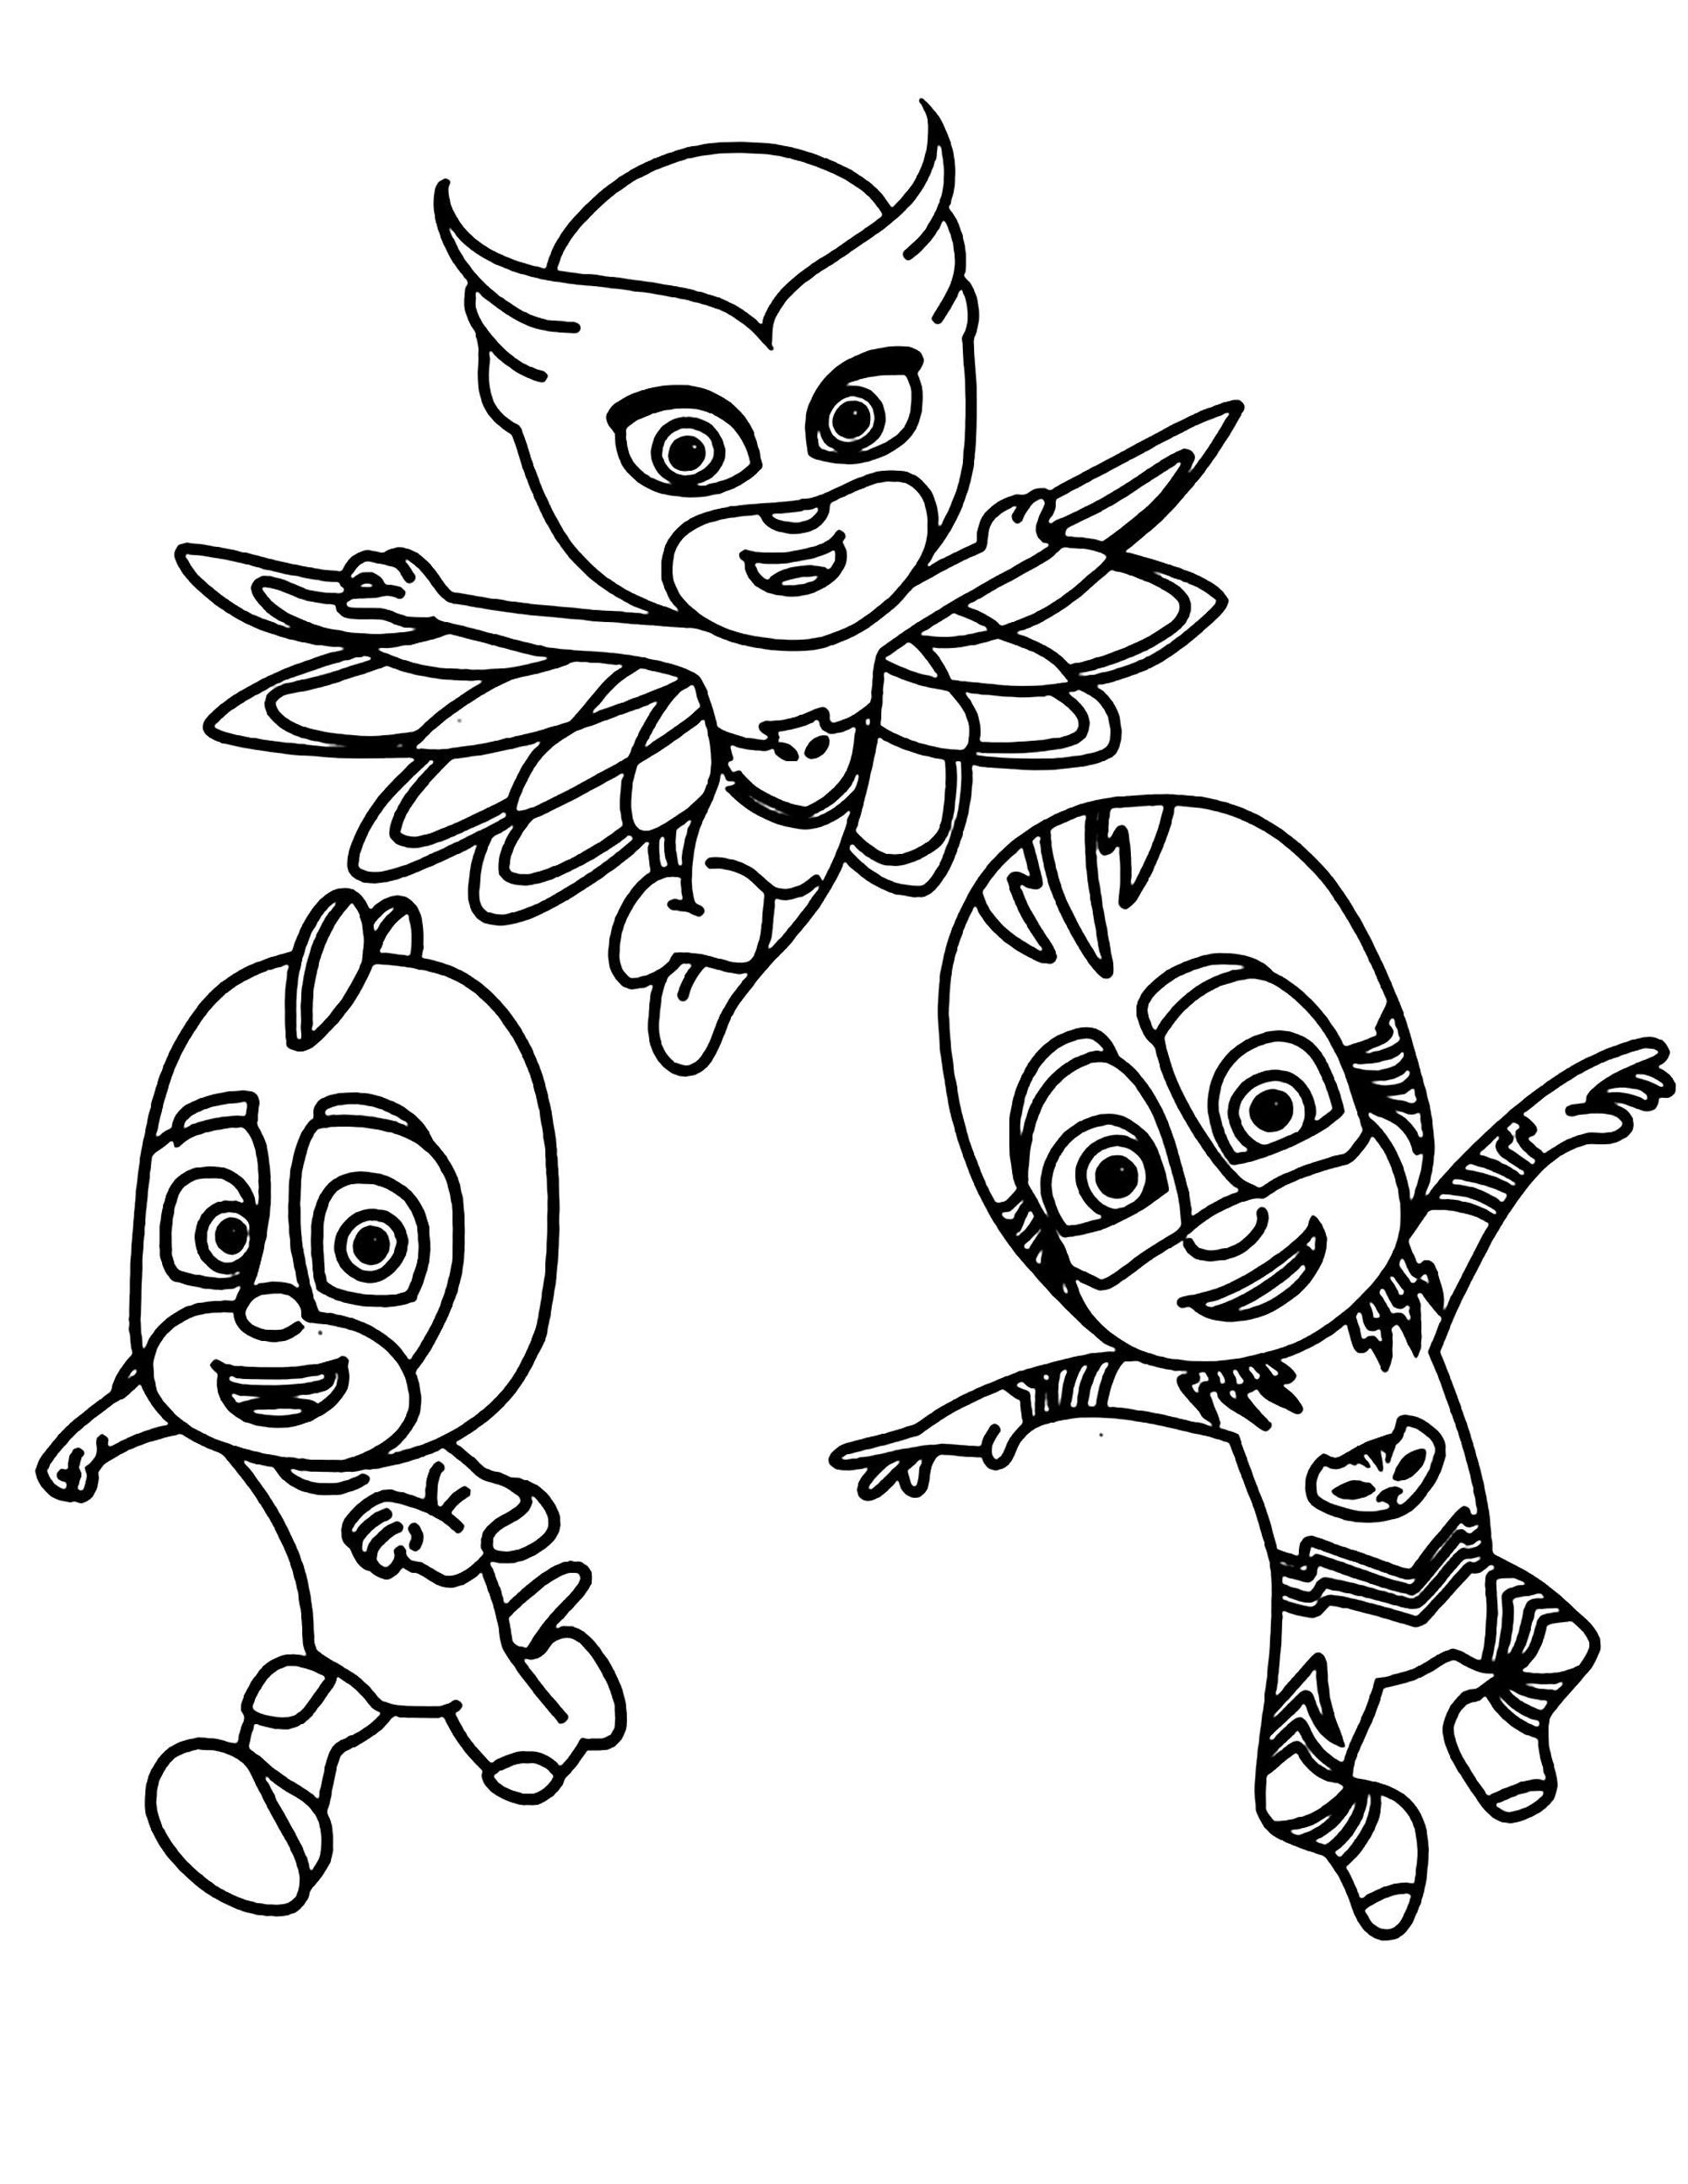 PJ Masks coloring page to print and color Coloring Pages